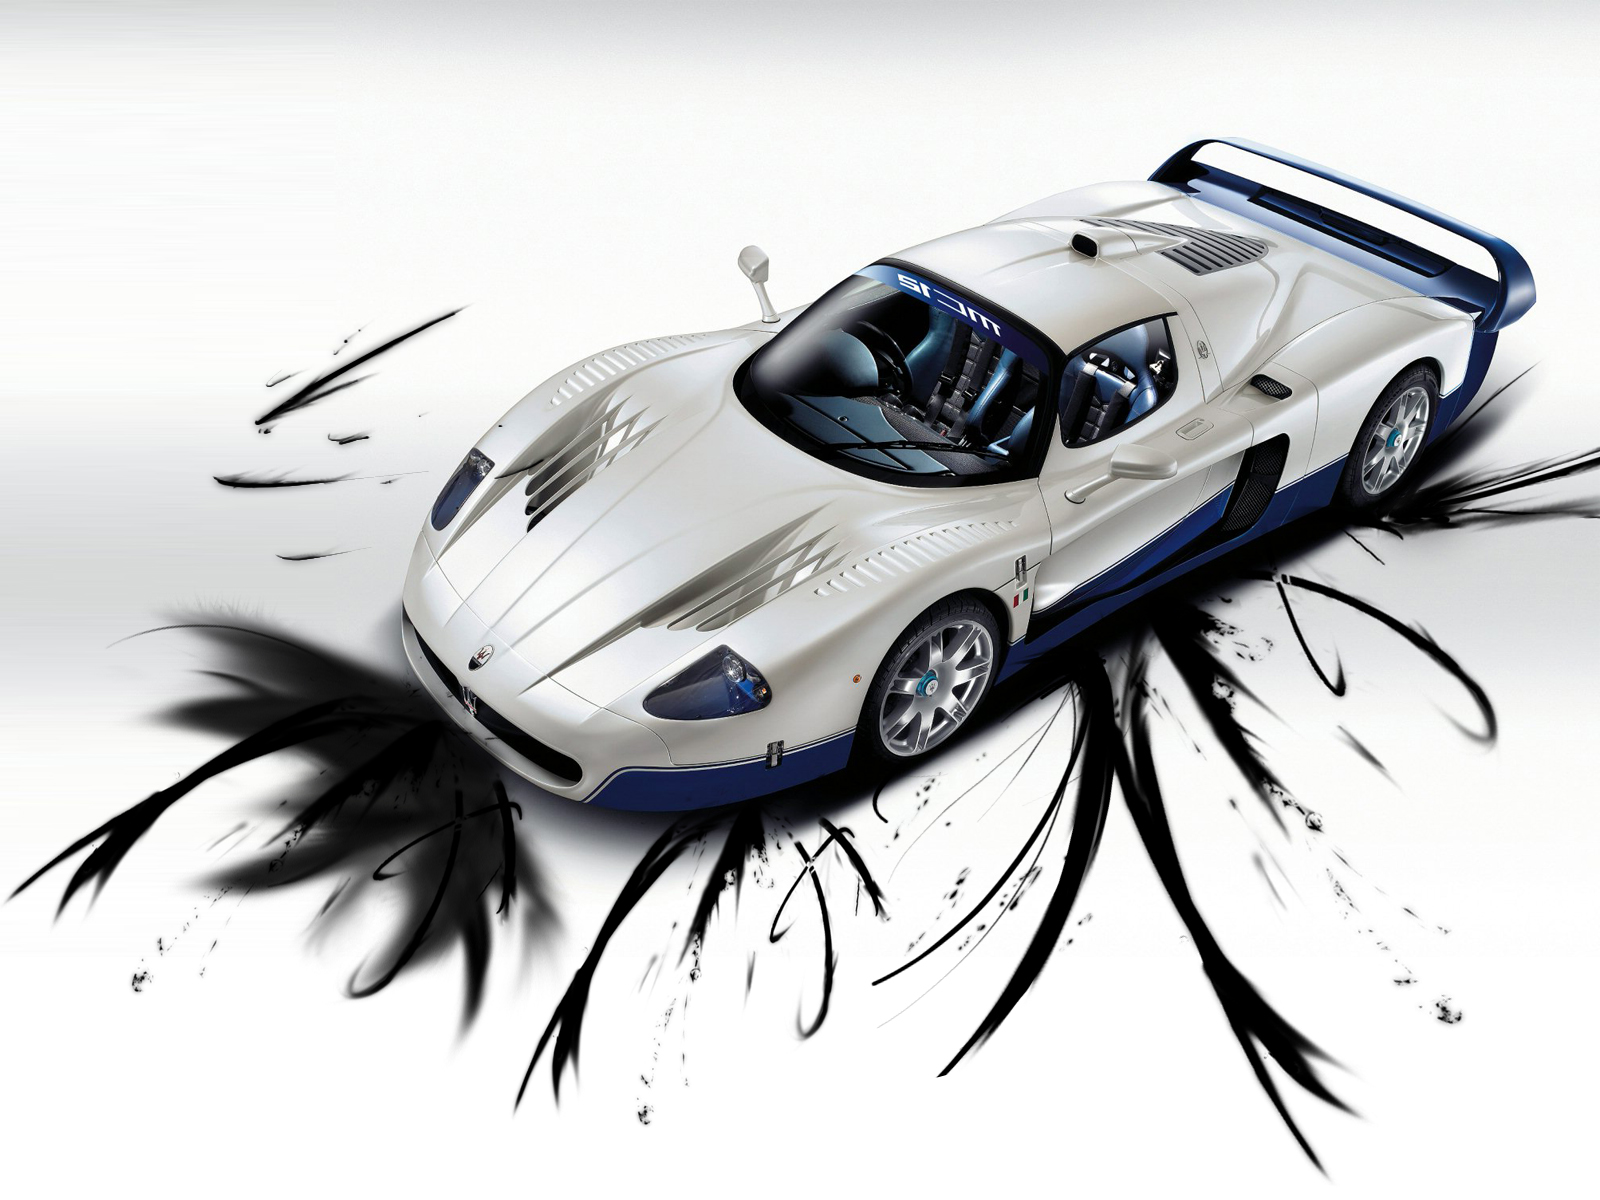 wallpapers of sport cars: Wallpapers Facebook Cover Animated Car Wallpaper: Cool